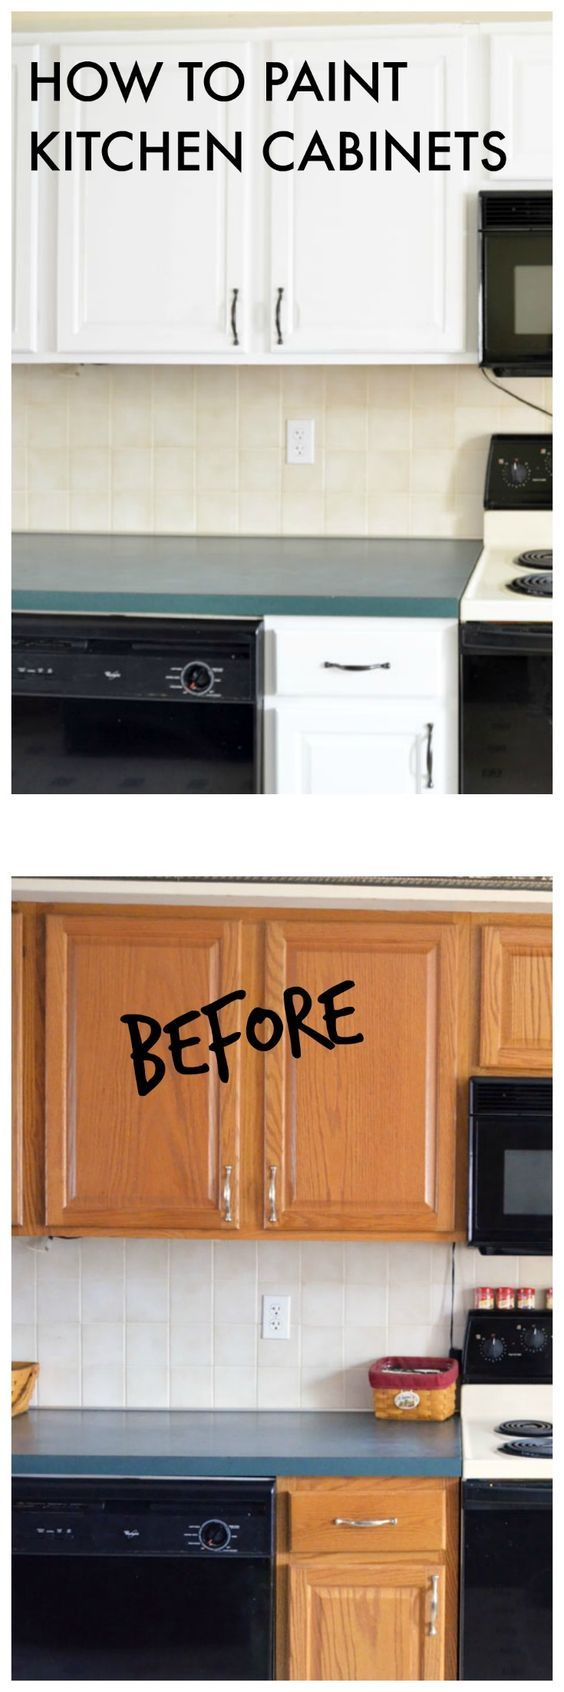 13 best images about painting cabinets on pinterest for Best primer for painting kitchen cabinets